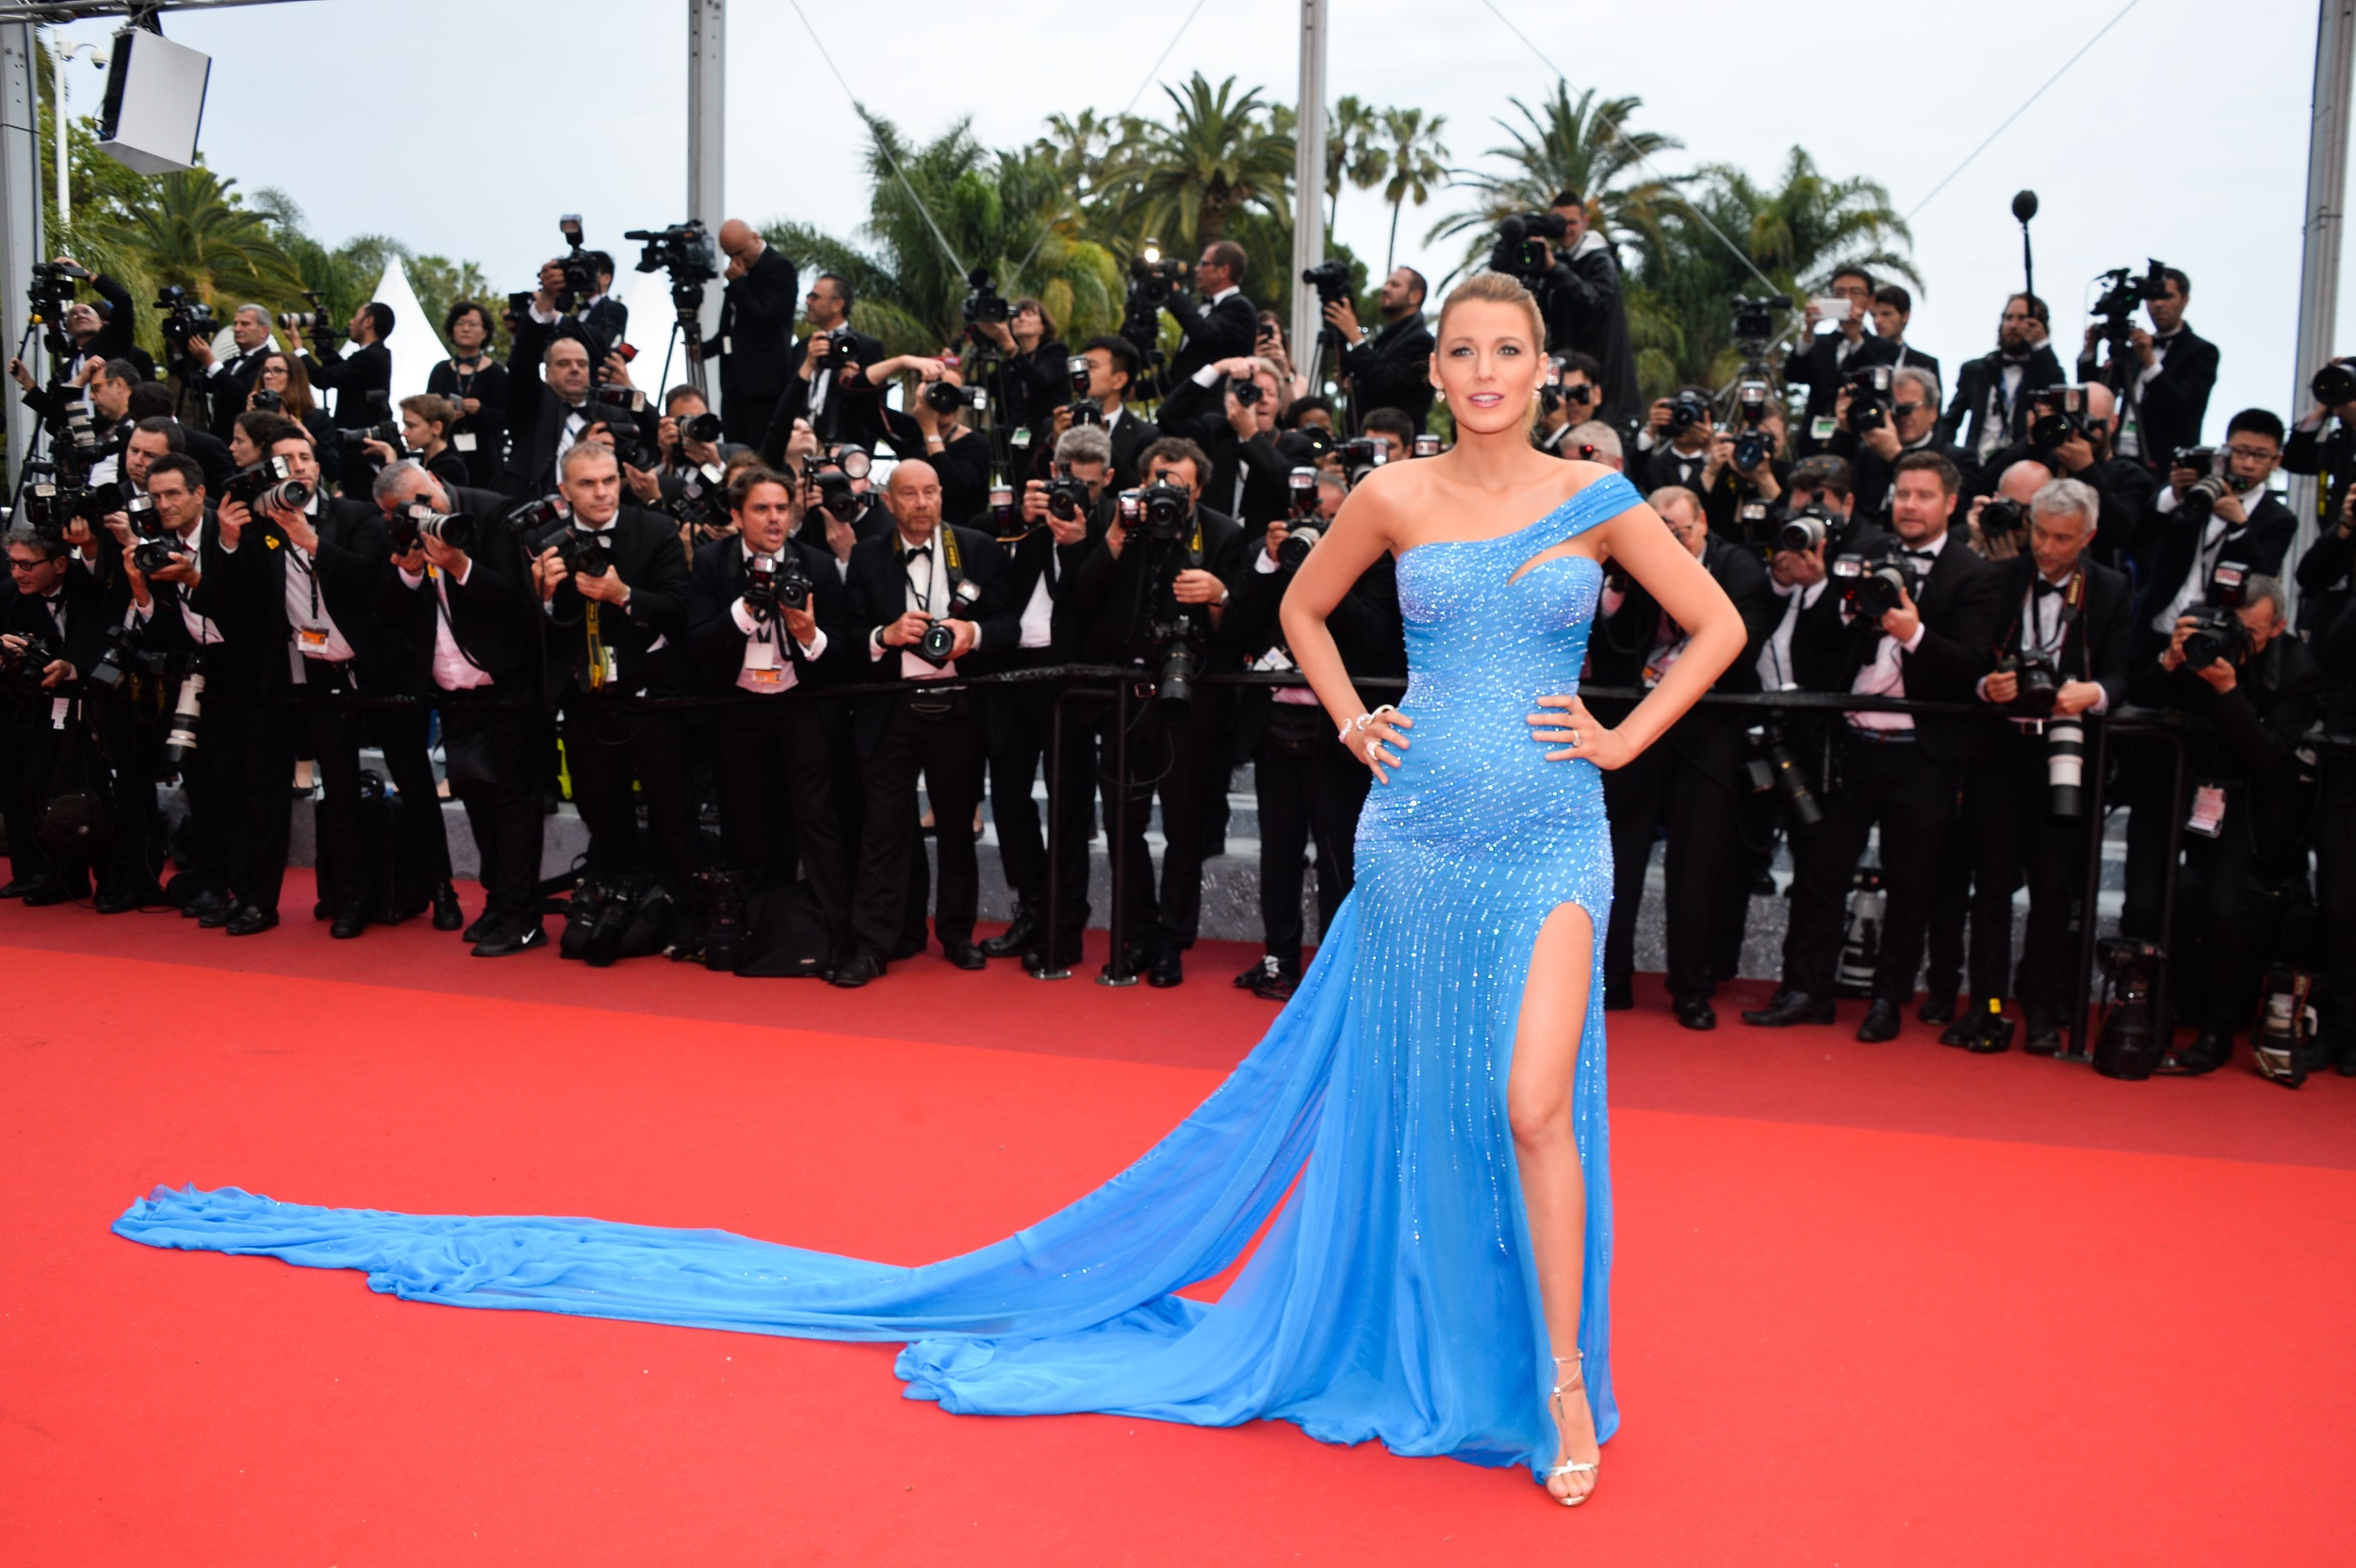 Blake Lively En Atelier Versace Cannes 2016 Blake Lively Affiche Sa Grossesse Sur Le Tapis